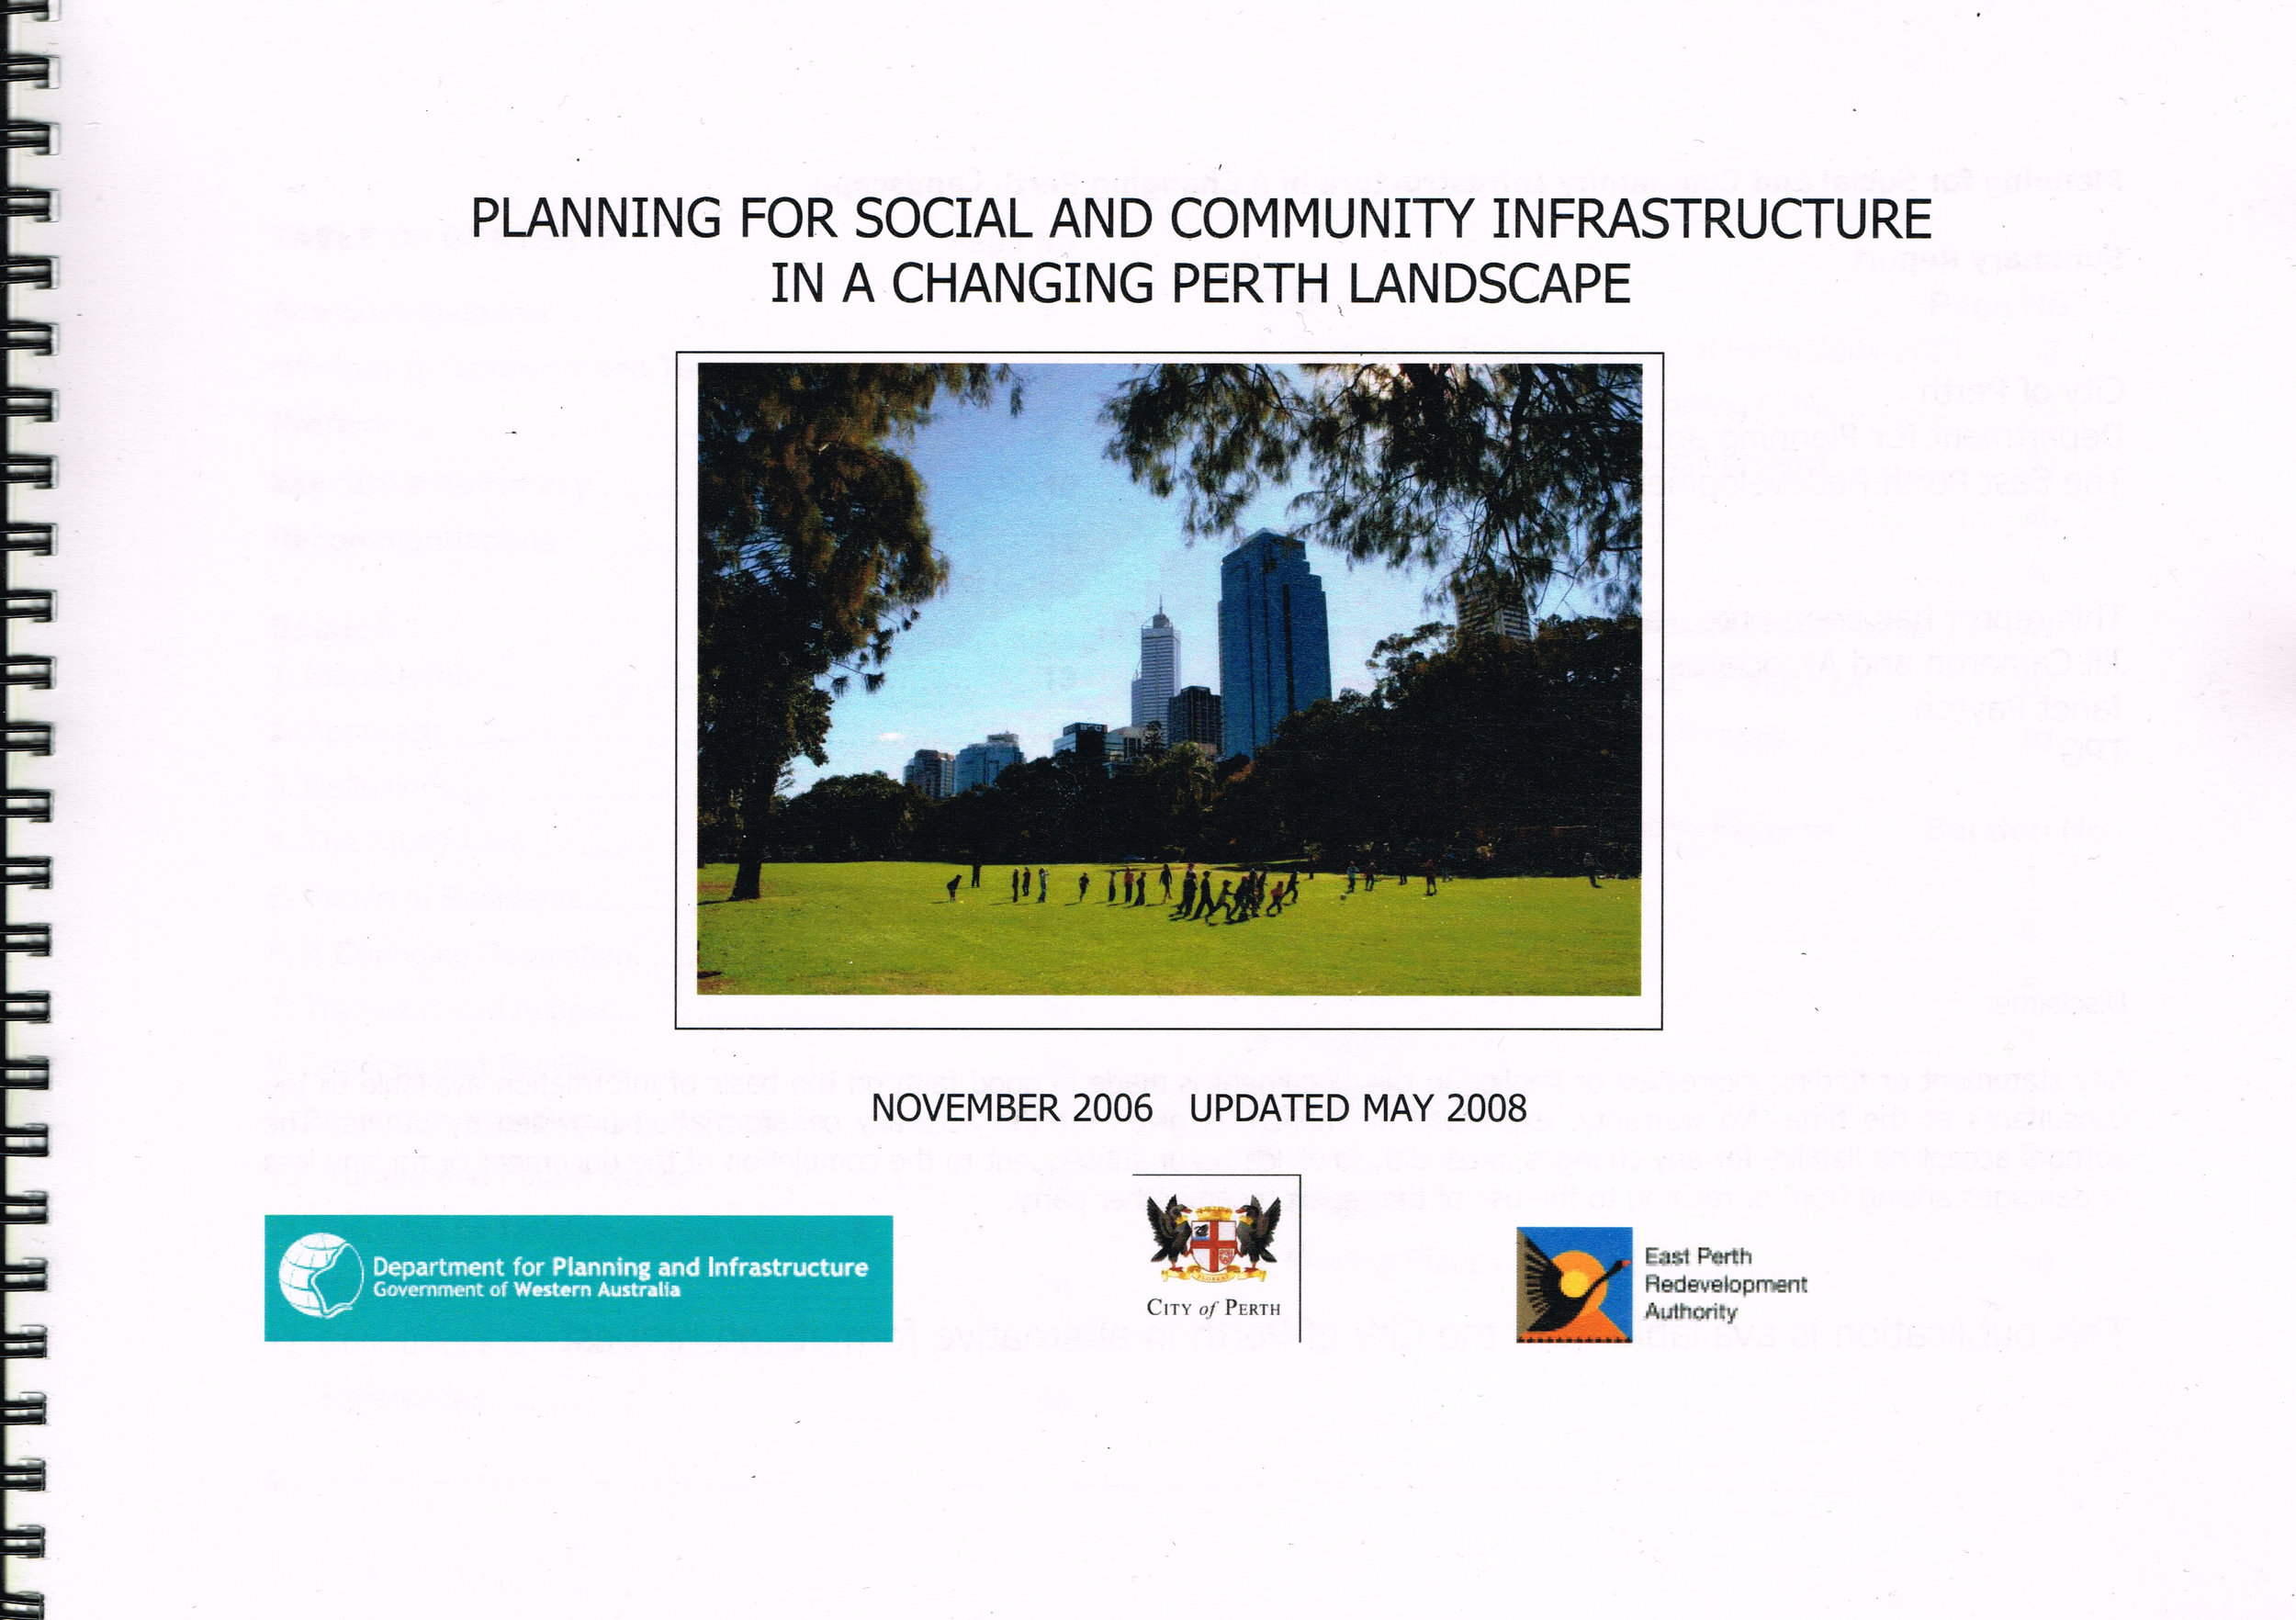 Planning for Social and Community Infrastructure in a Changing Perth Landscape, November 2006 Updated May 2008  Prepared by Jill Cameron and Associates, Janet Payton, TPG for the City of Perth, Department for Planning and Infrastructure and The East Perth Redevelopment Authority